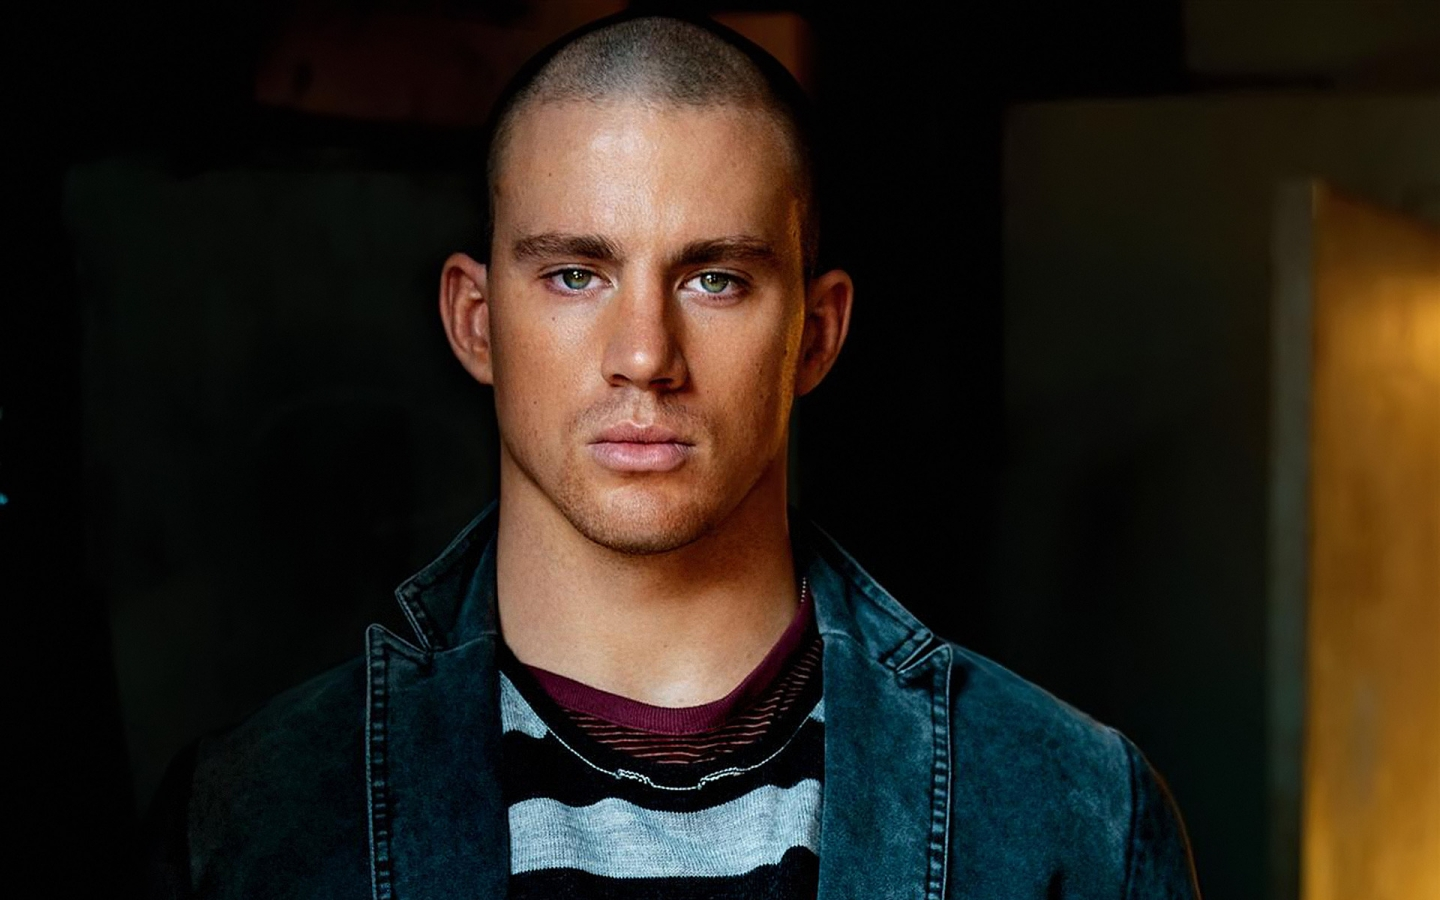 Channing Tatum Beautiful Eyes for 1440 x 900 widescreen resolution